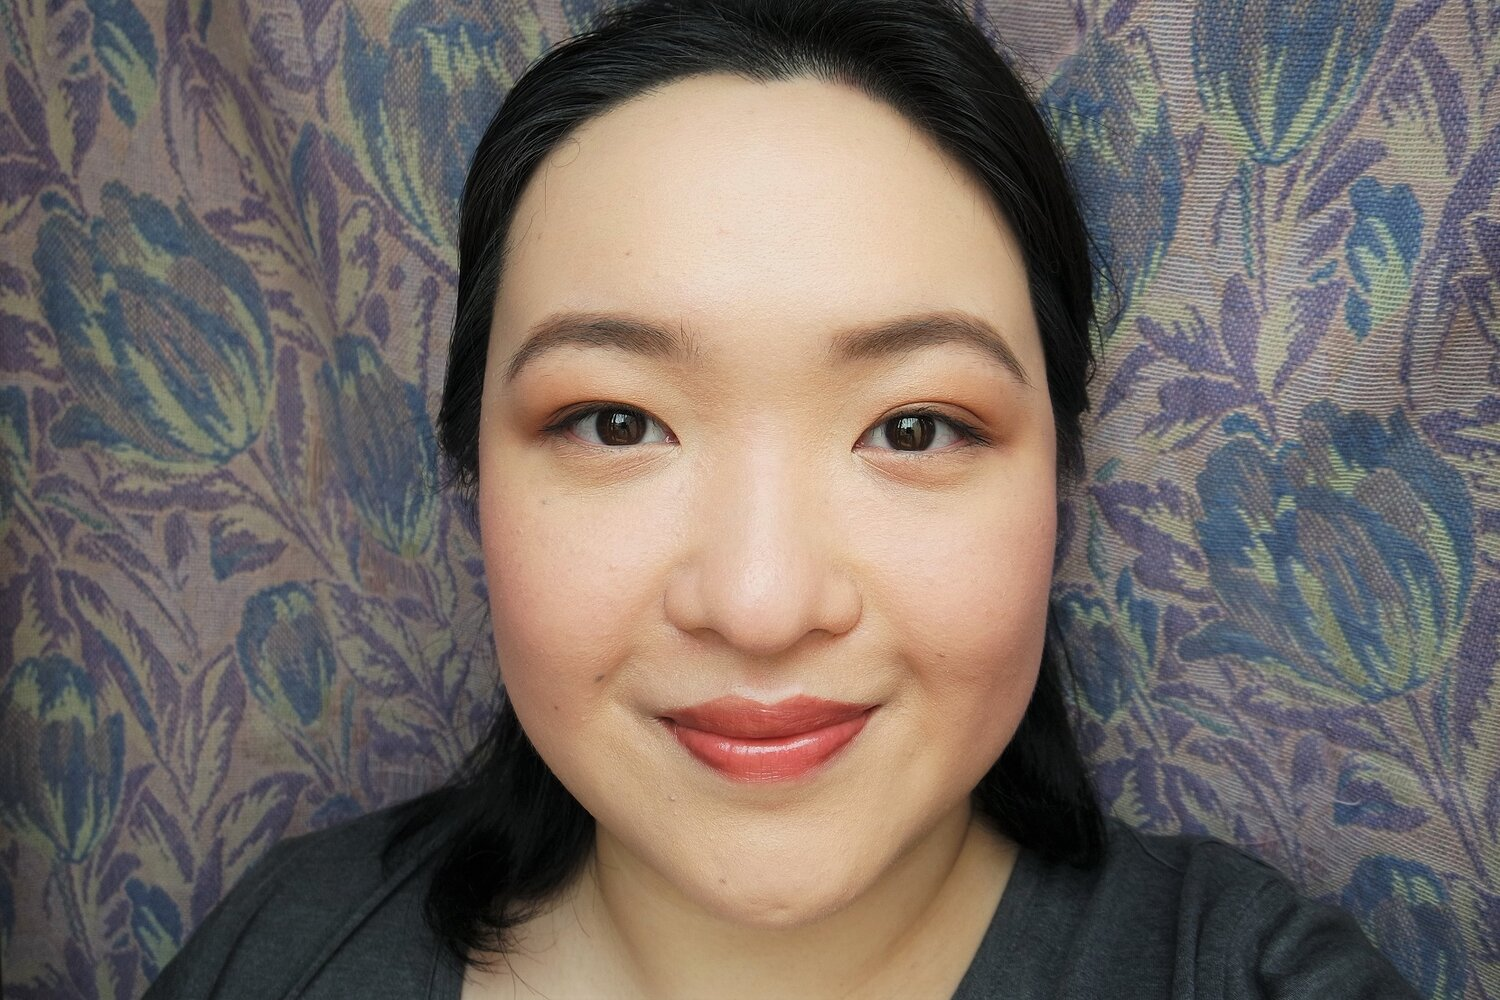 Left: Tone-Up Cream underneath makeup; right: bare skin underneath makeup